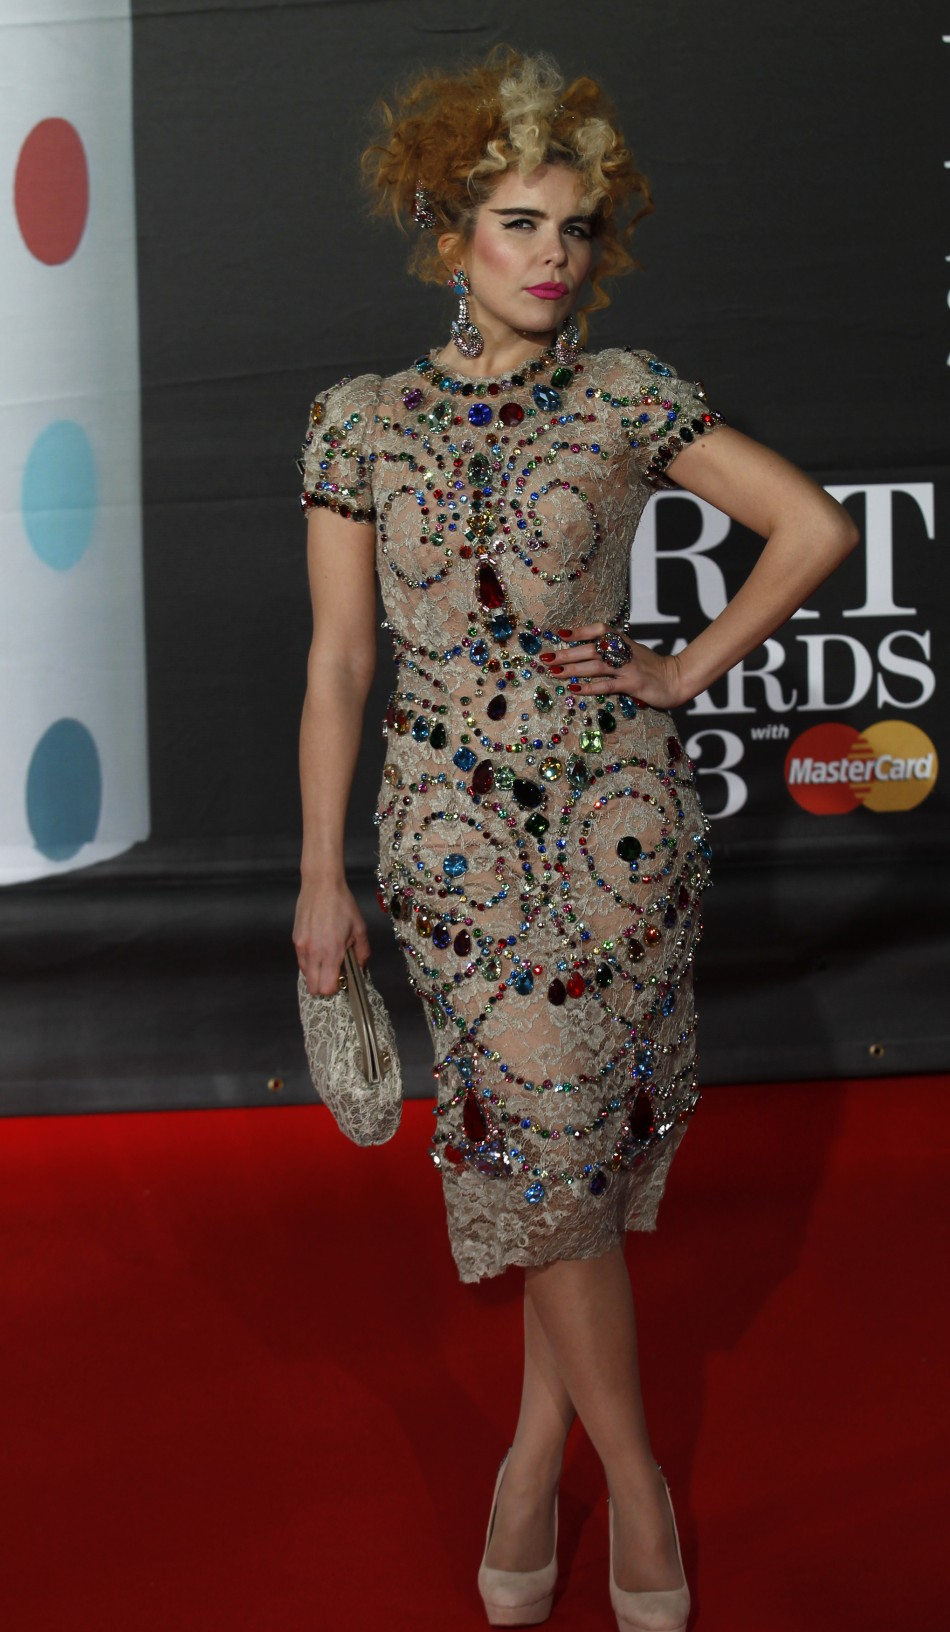 Singer Paloma Faith arrives for the BRIT Awards, celebrating British pop music, at the O2 Arena in London February 20, 2013.